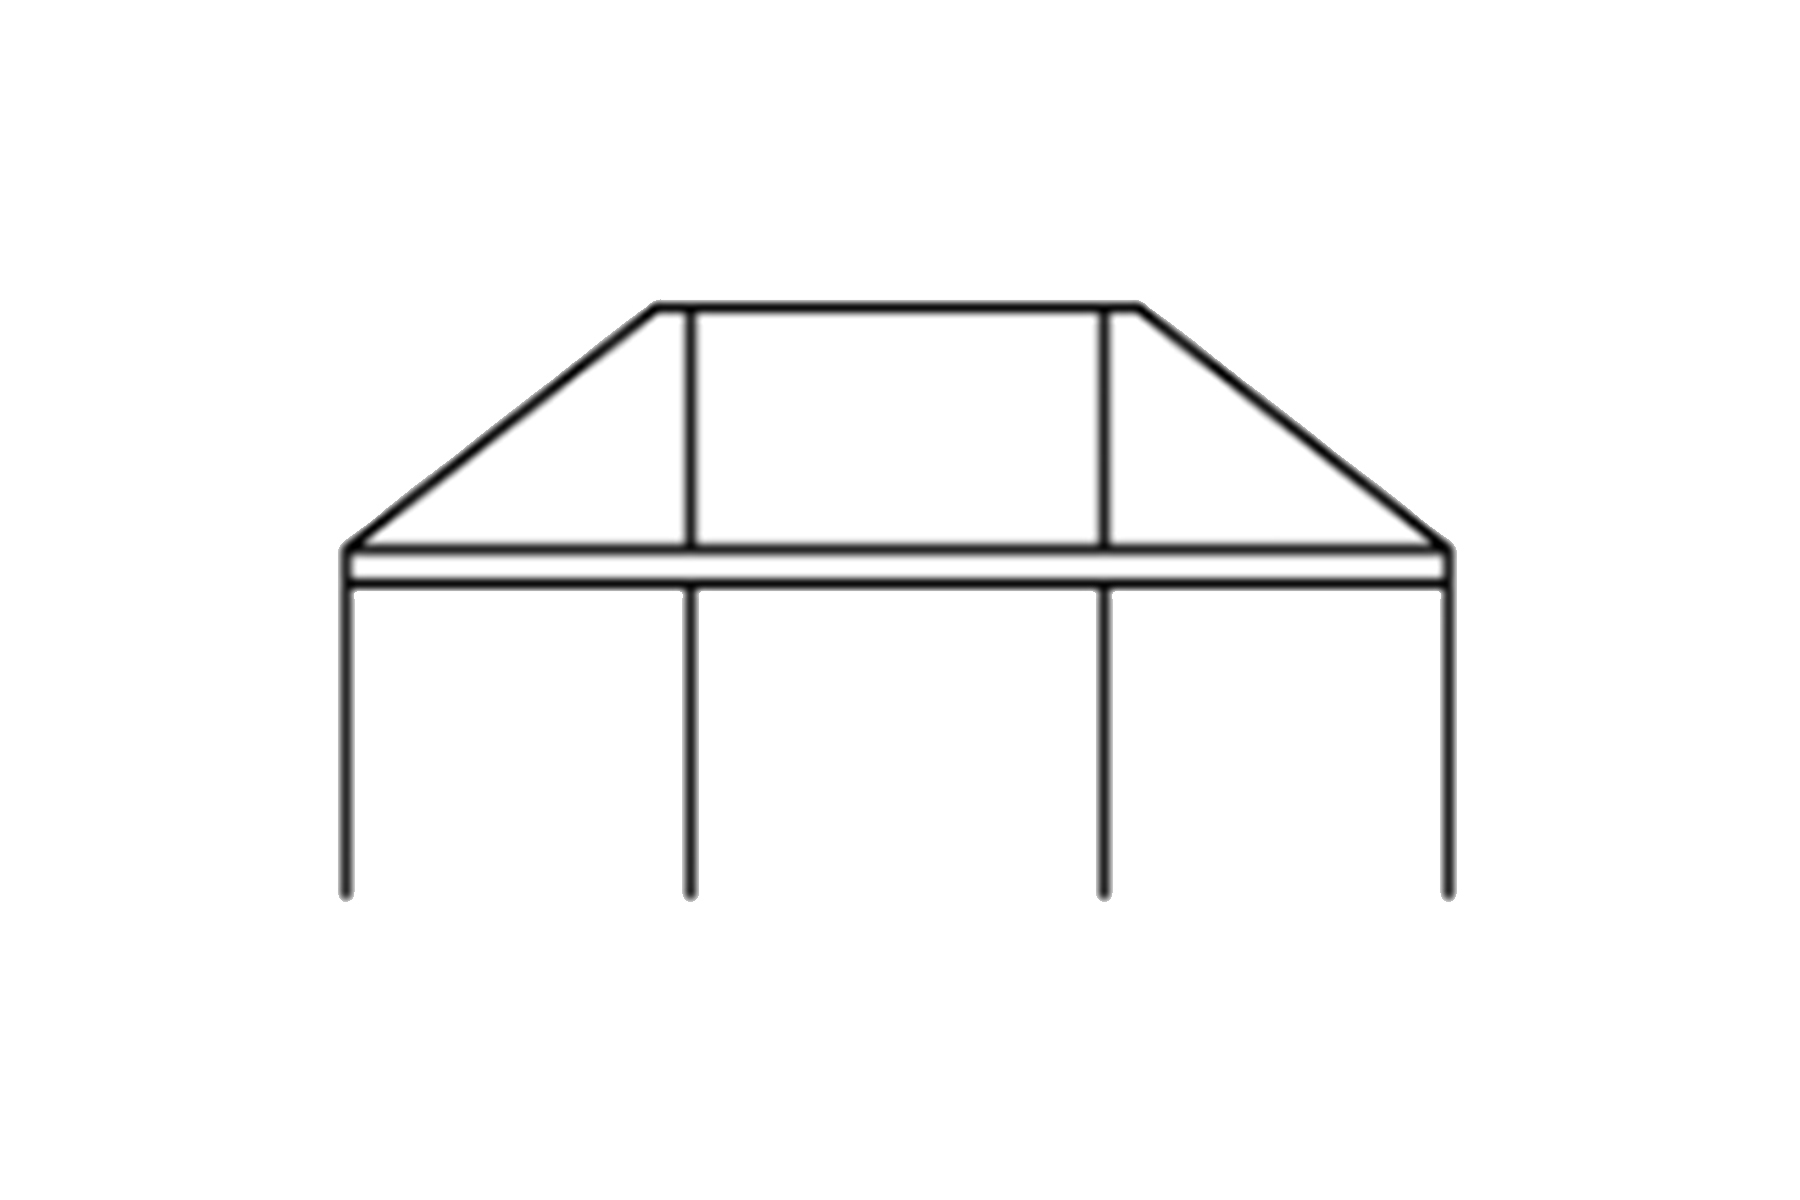 20 x 60 Frame Tent